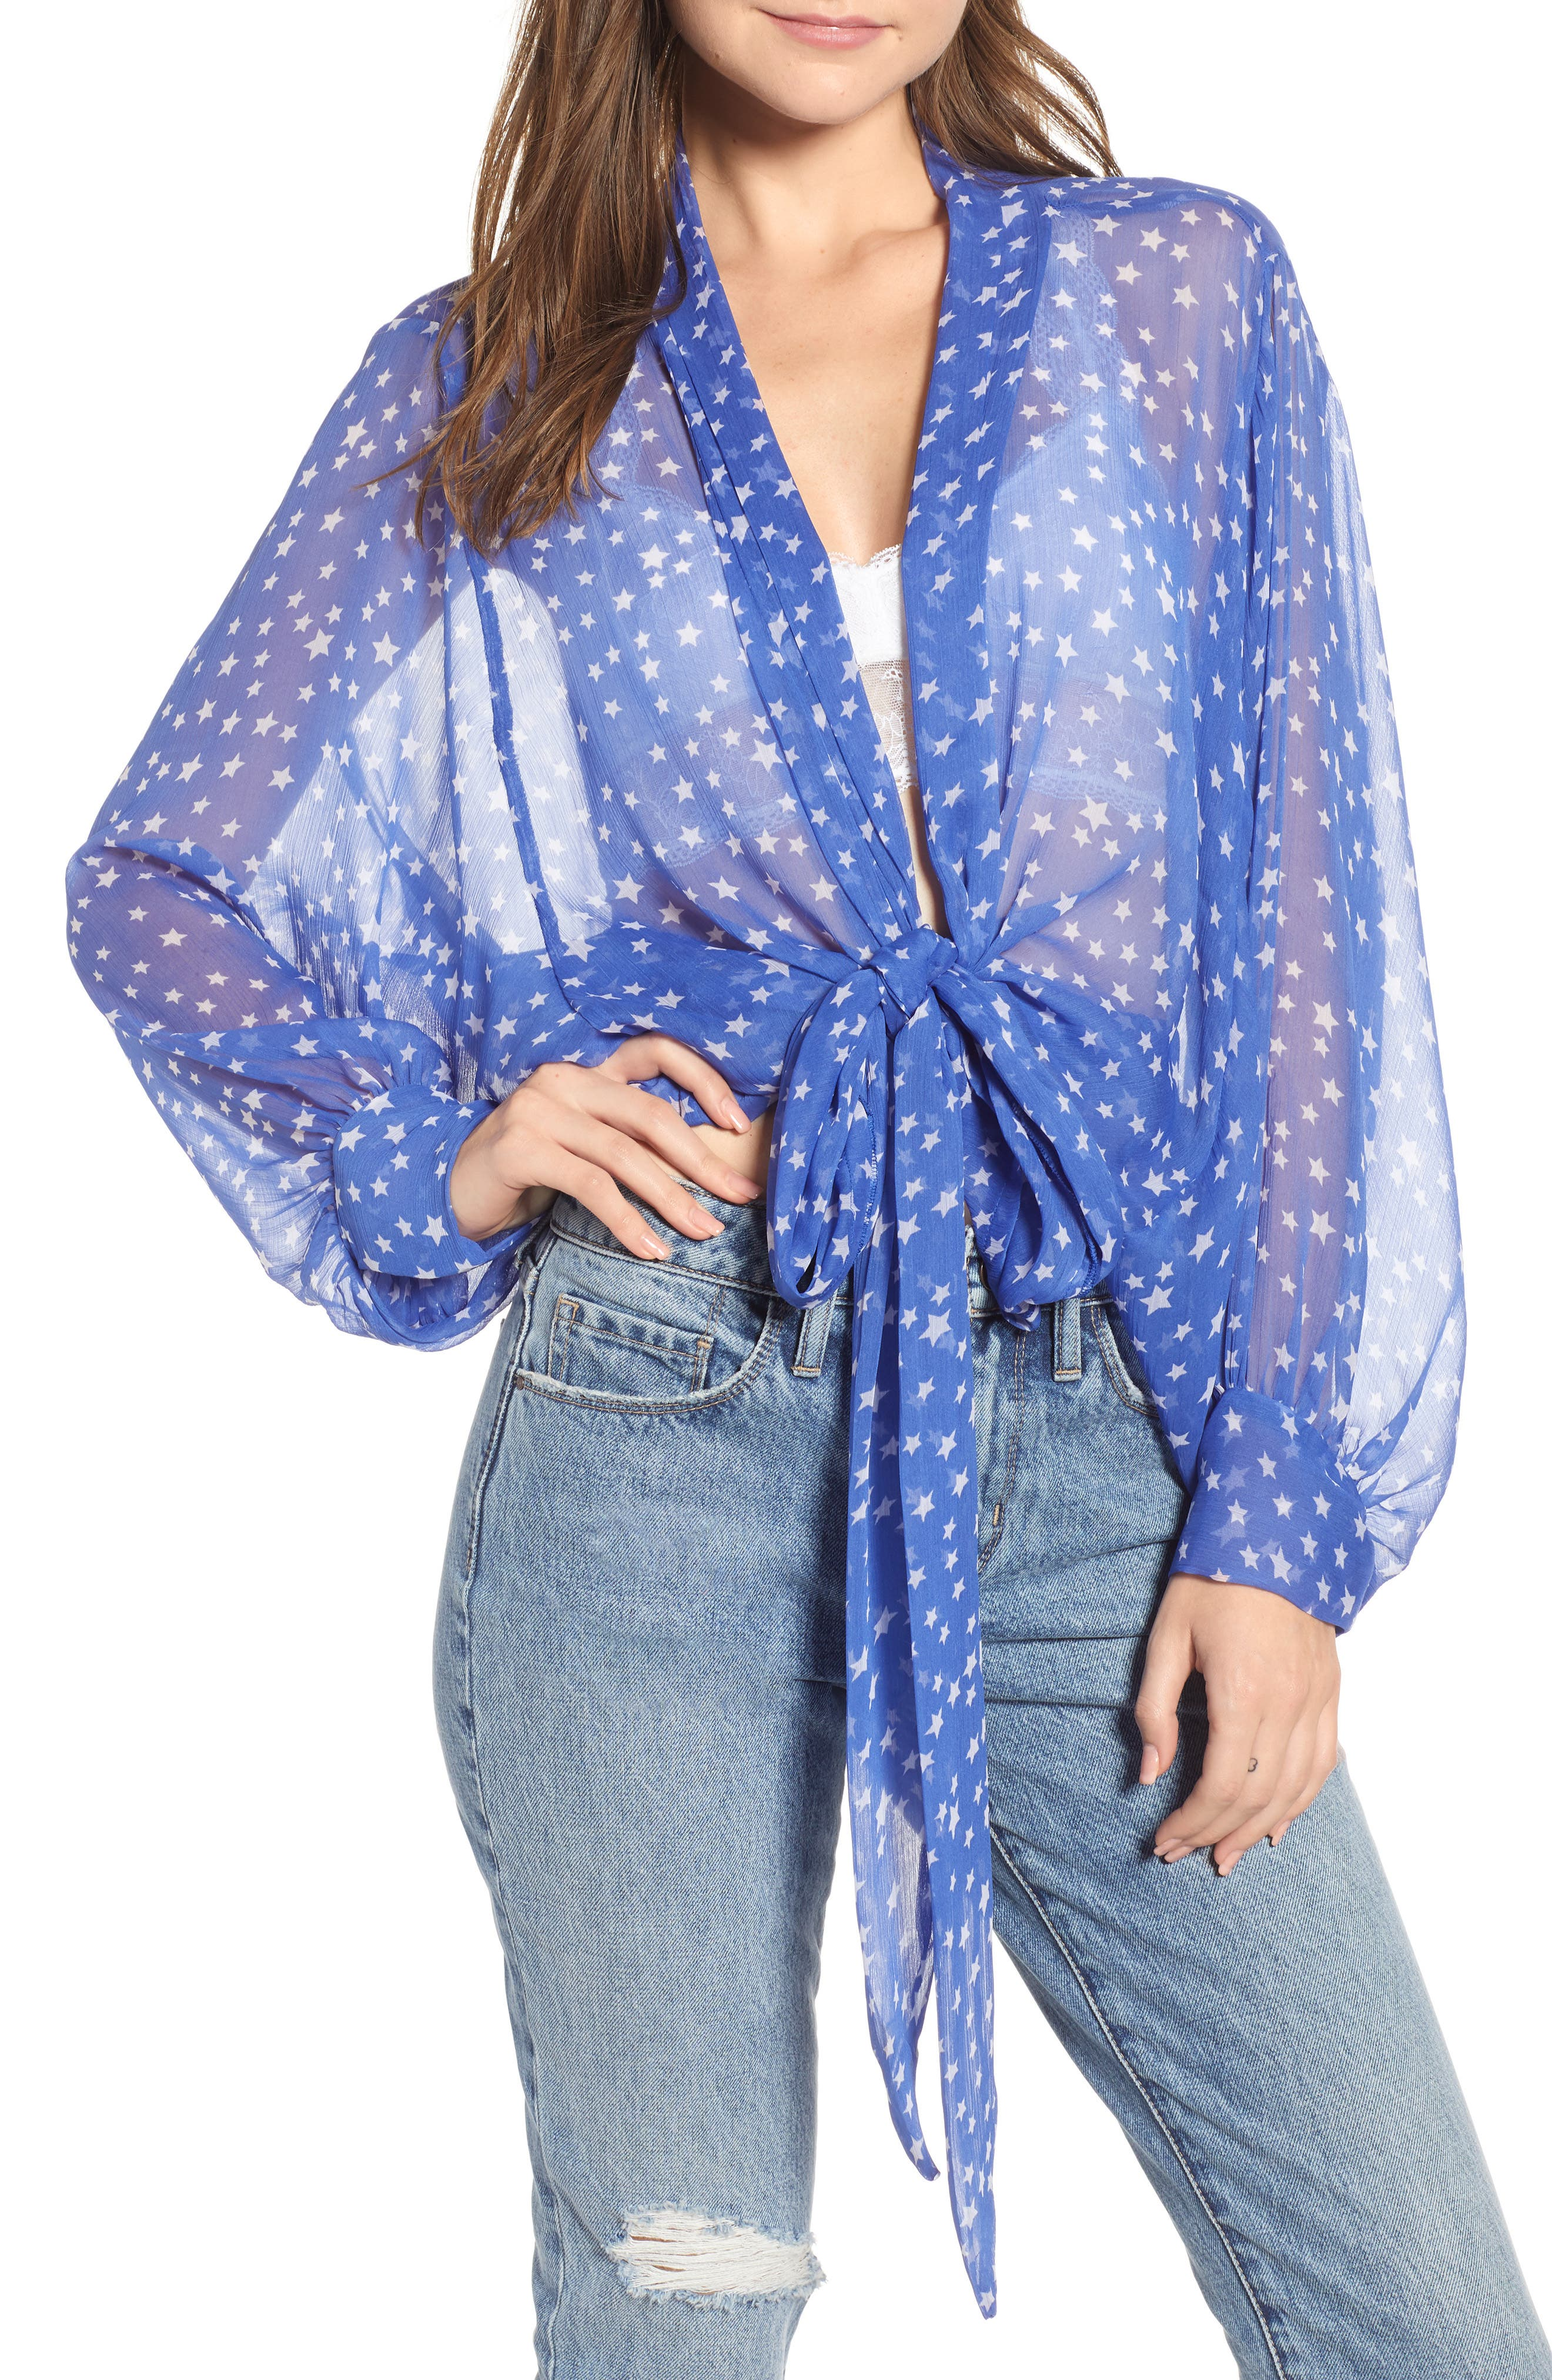 FREE PEOPLE, Star Dazed Scarf Wrap, Main thumbnail 1, color, BLUE